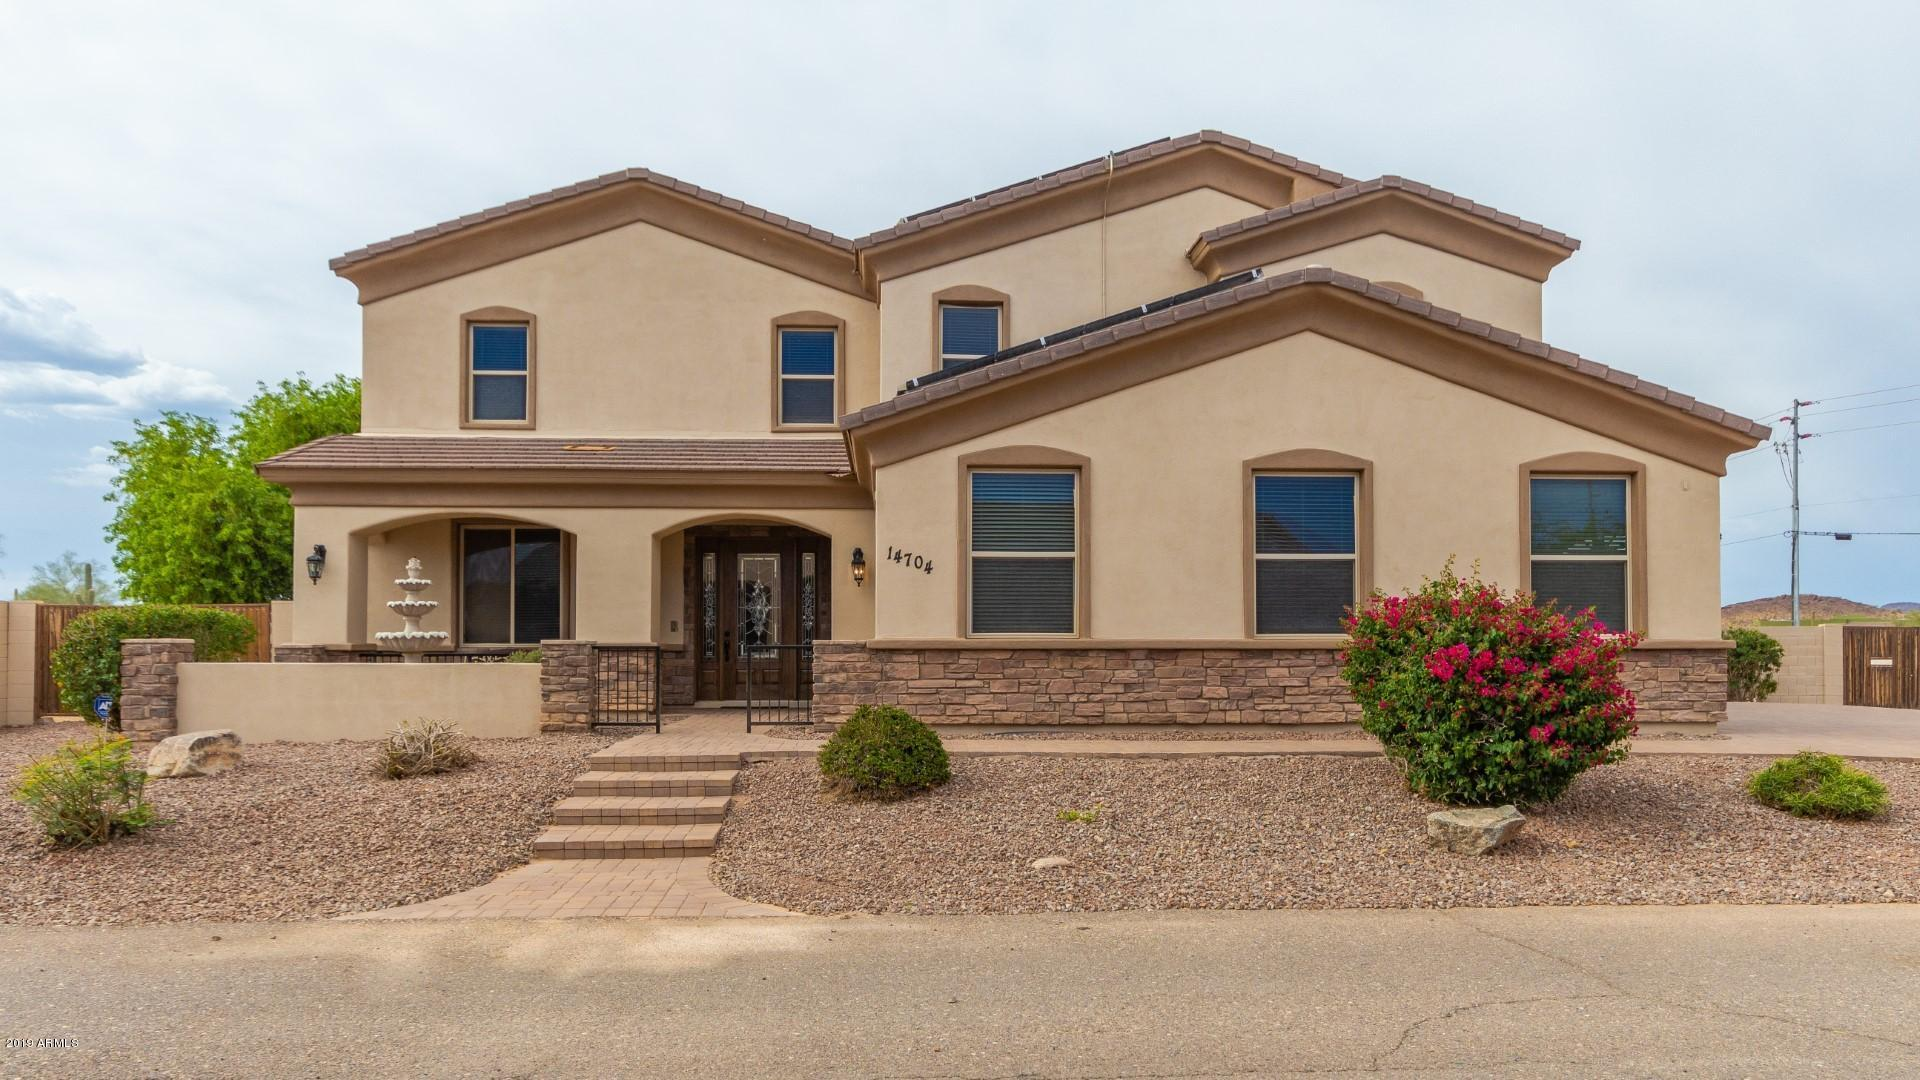 14704 W BLACK HILL Road, Surprise, Arizona